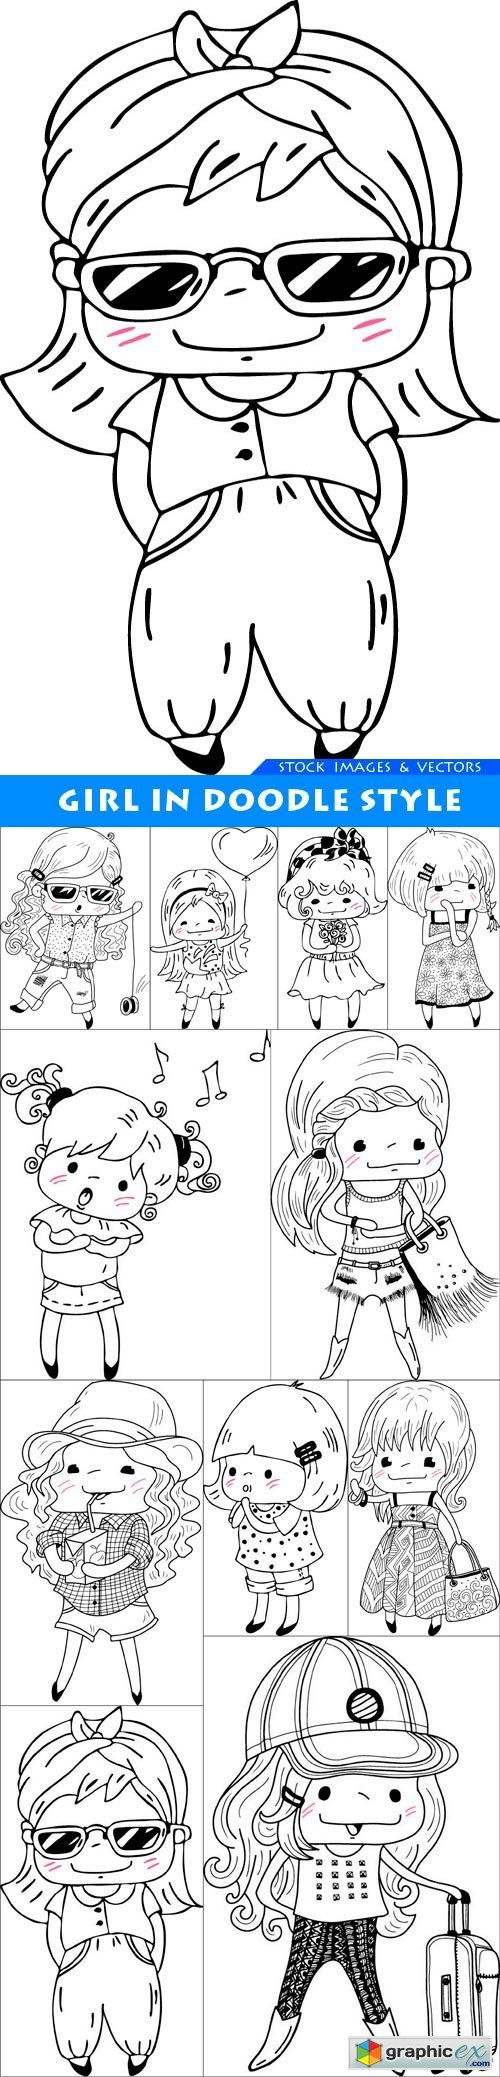 Girl in doodle style 11X EPS